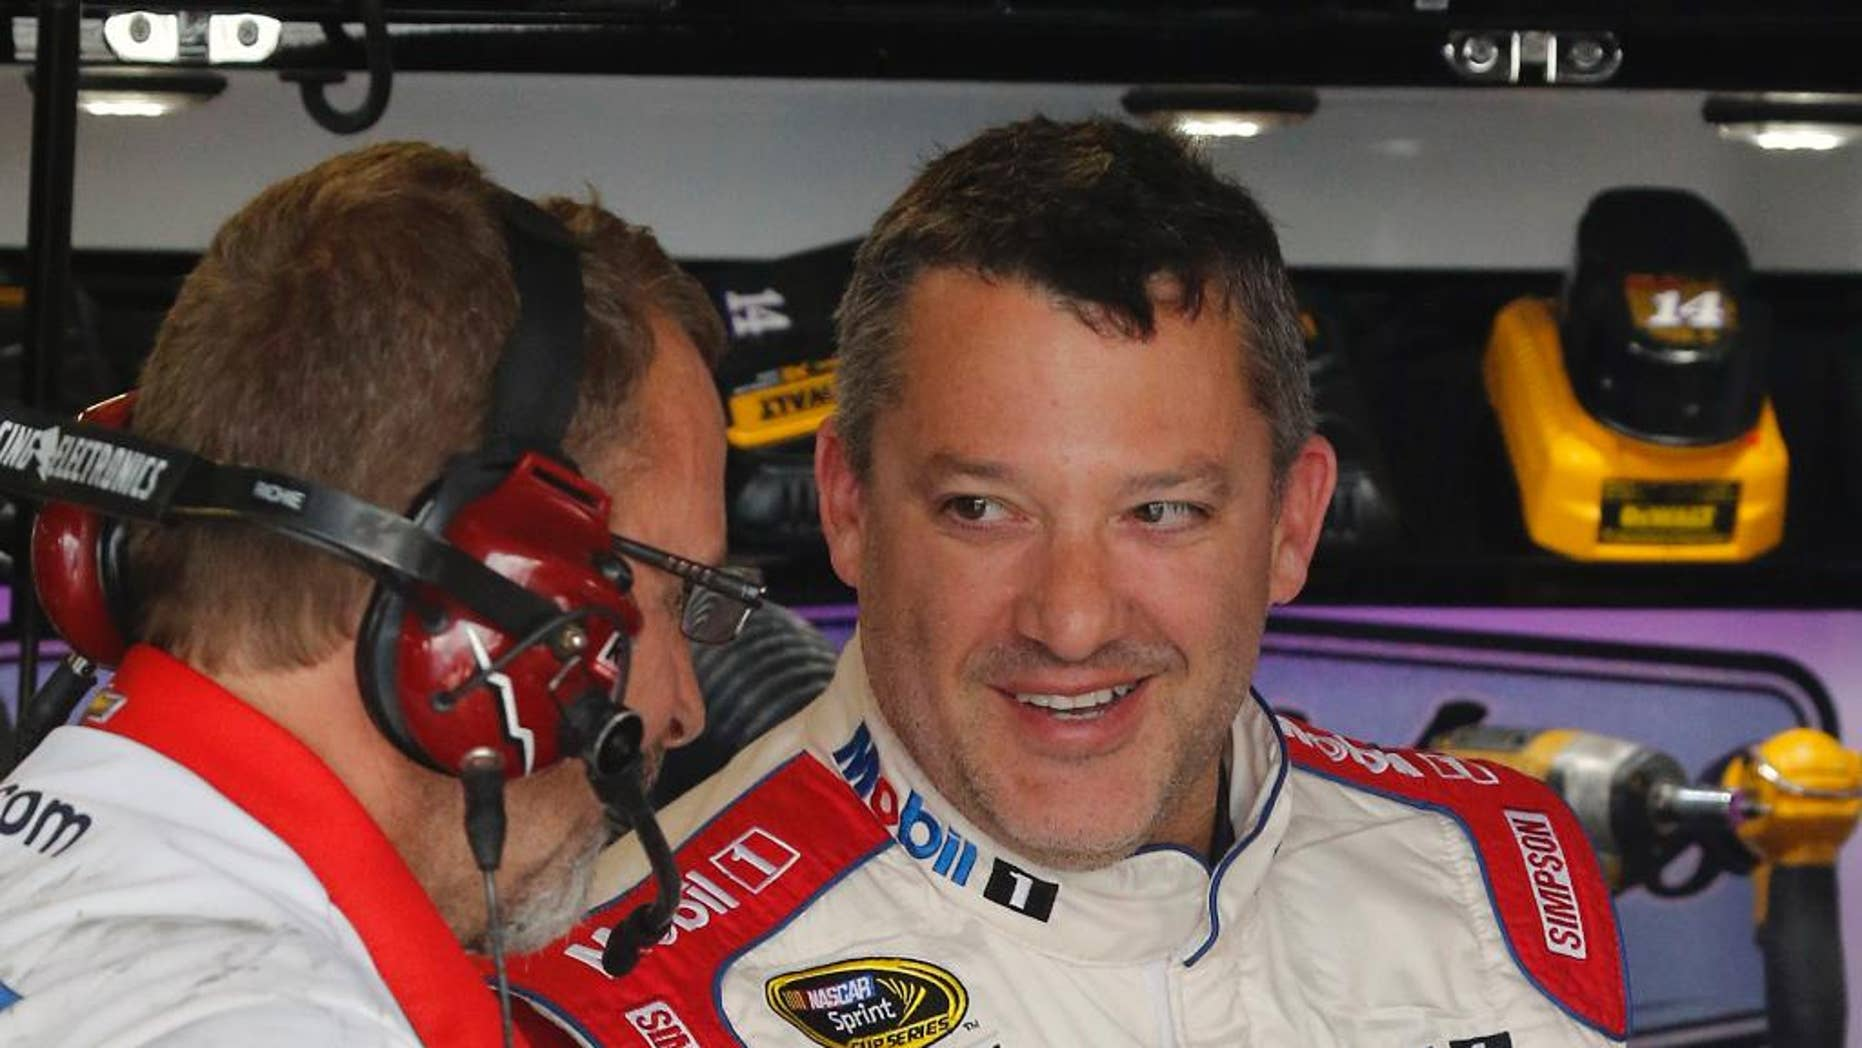 FILE - In this April 22, 2016, file photo, Tony Stewart, right, jokes with a crew member during practice for a NASCAR Sprint Cup auto race at Richmond International Raceway in Richmond, Va. Now that he's got his first victory in over three years, Stewart is able to realistically set some goals for his final season as a NASCAR driver. First up: Cross Kentucky Speedway off the list of active tracks where he's never won. (AP Photo/Steve Helber, File)